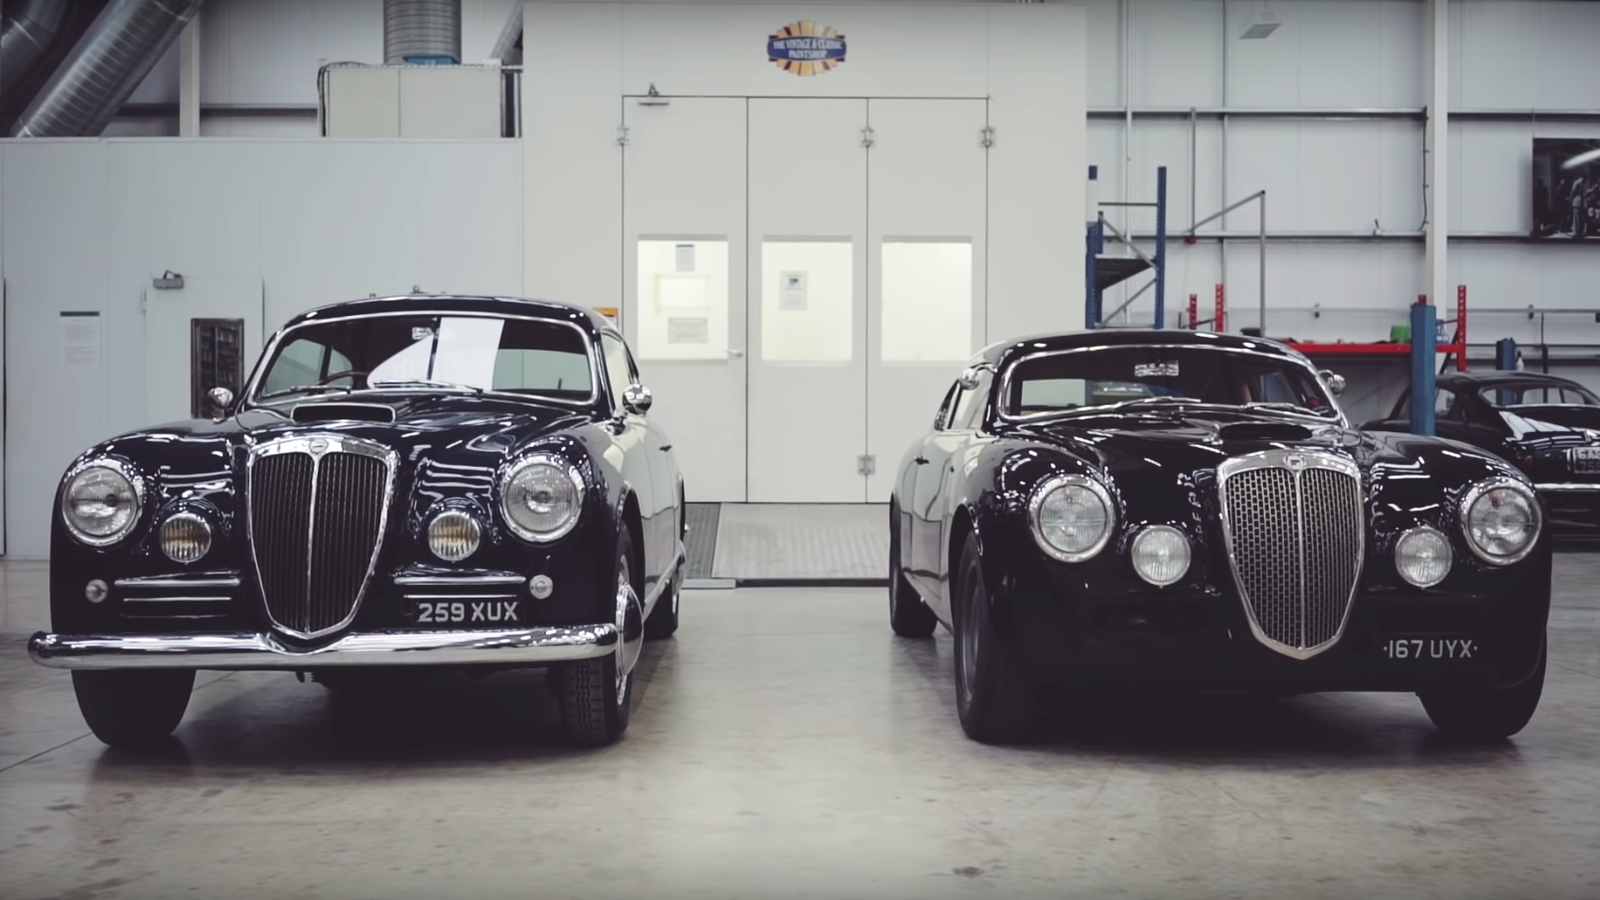 This Lancia Aurelia is so beautiful I could cry